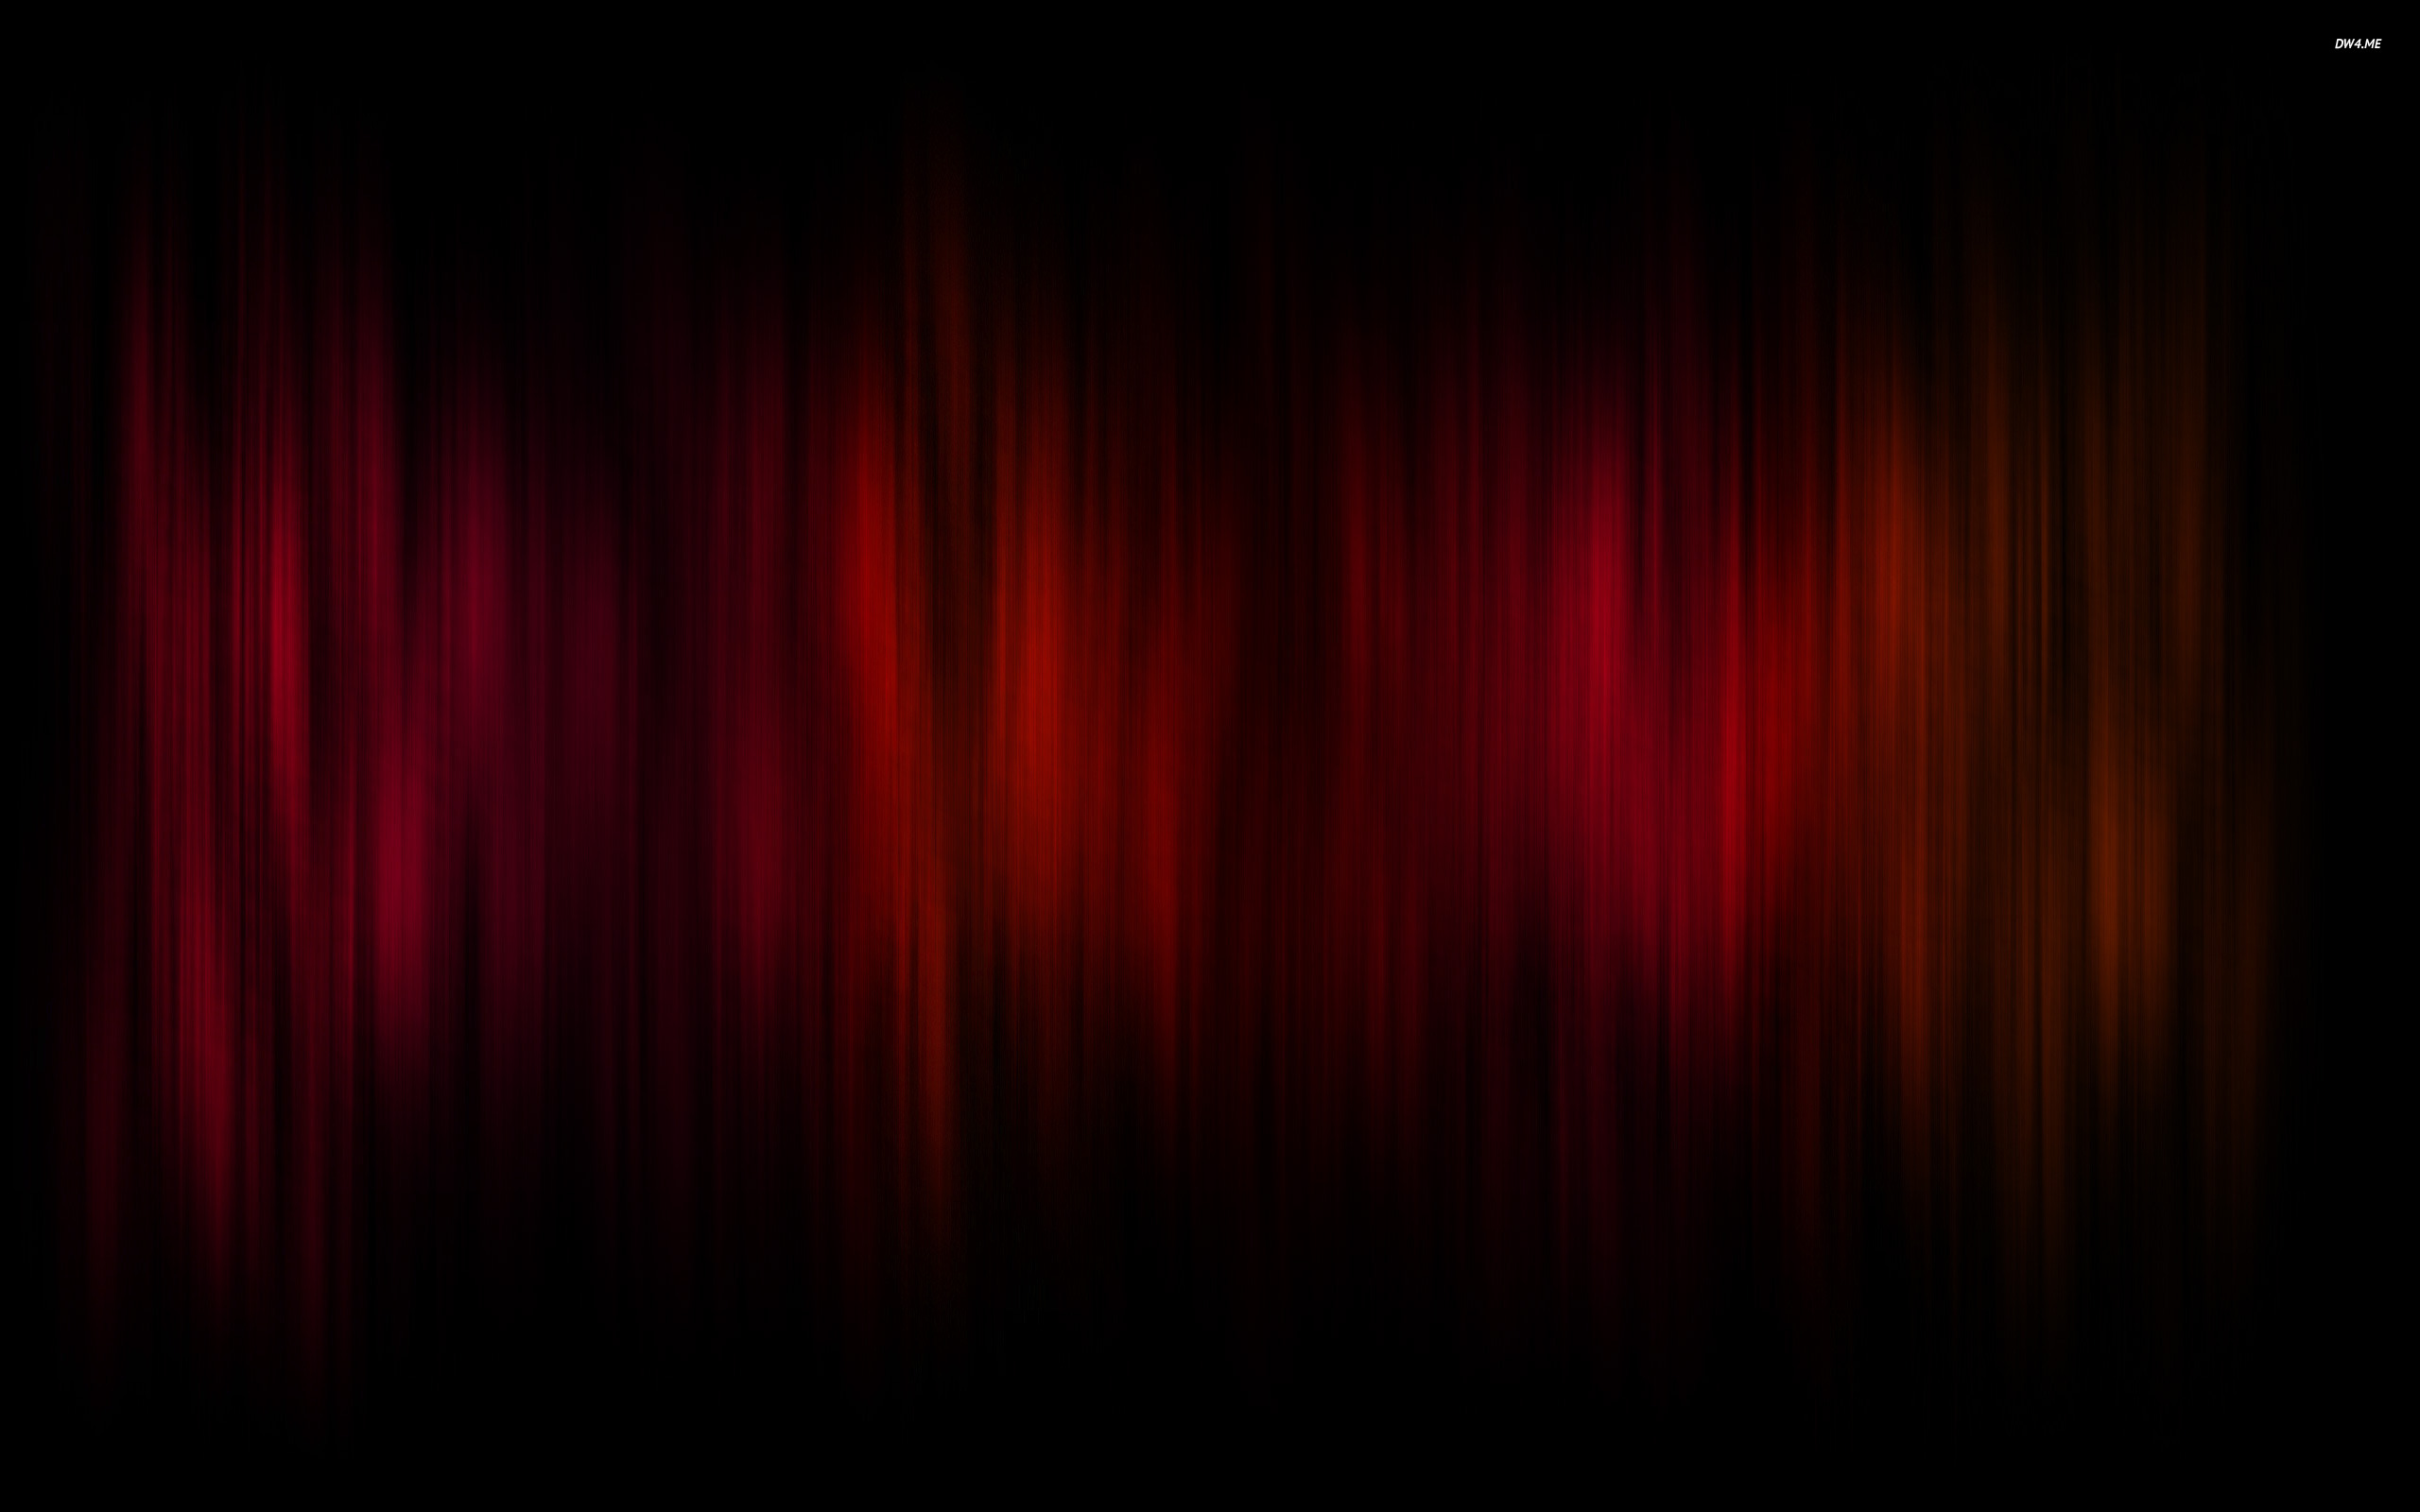 Red black abstract wallpaper wallpapersafari - Black red abstract wallpaper ...